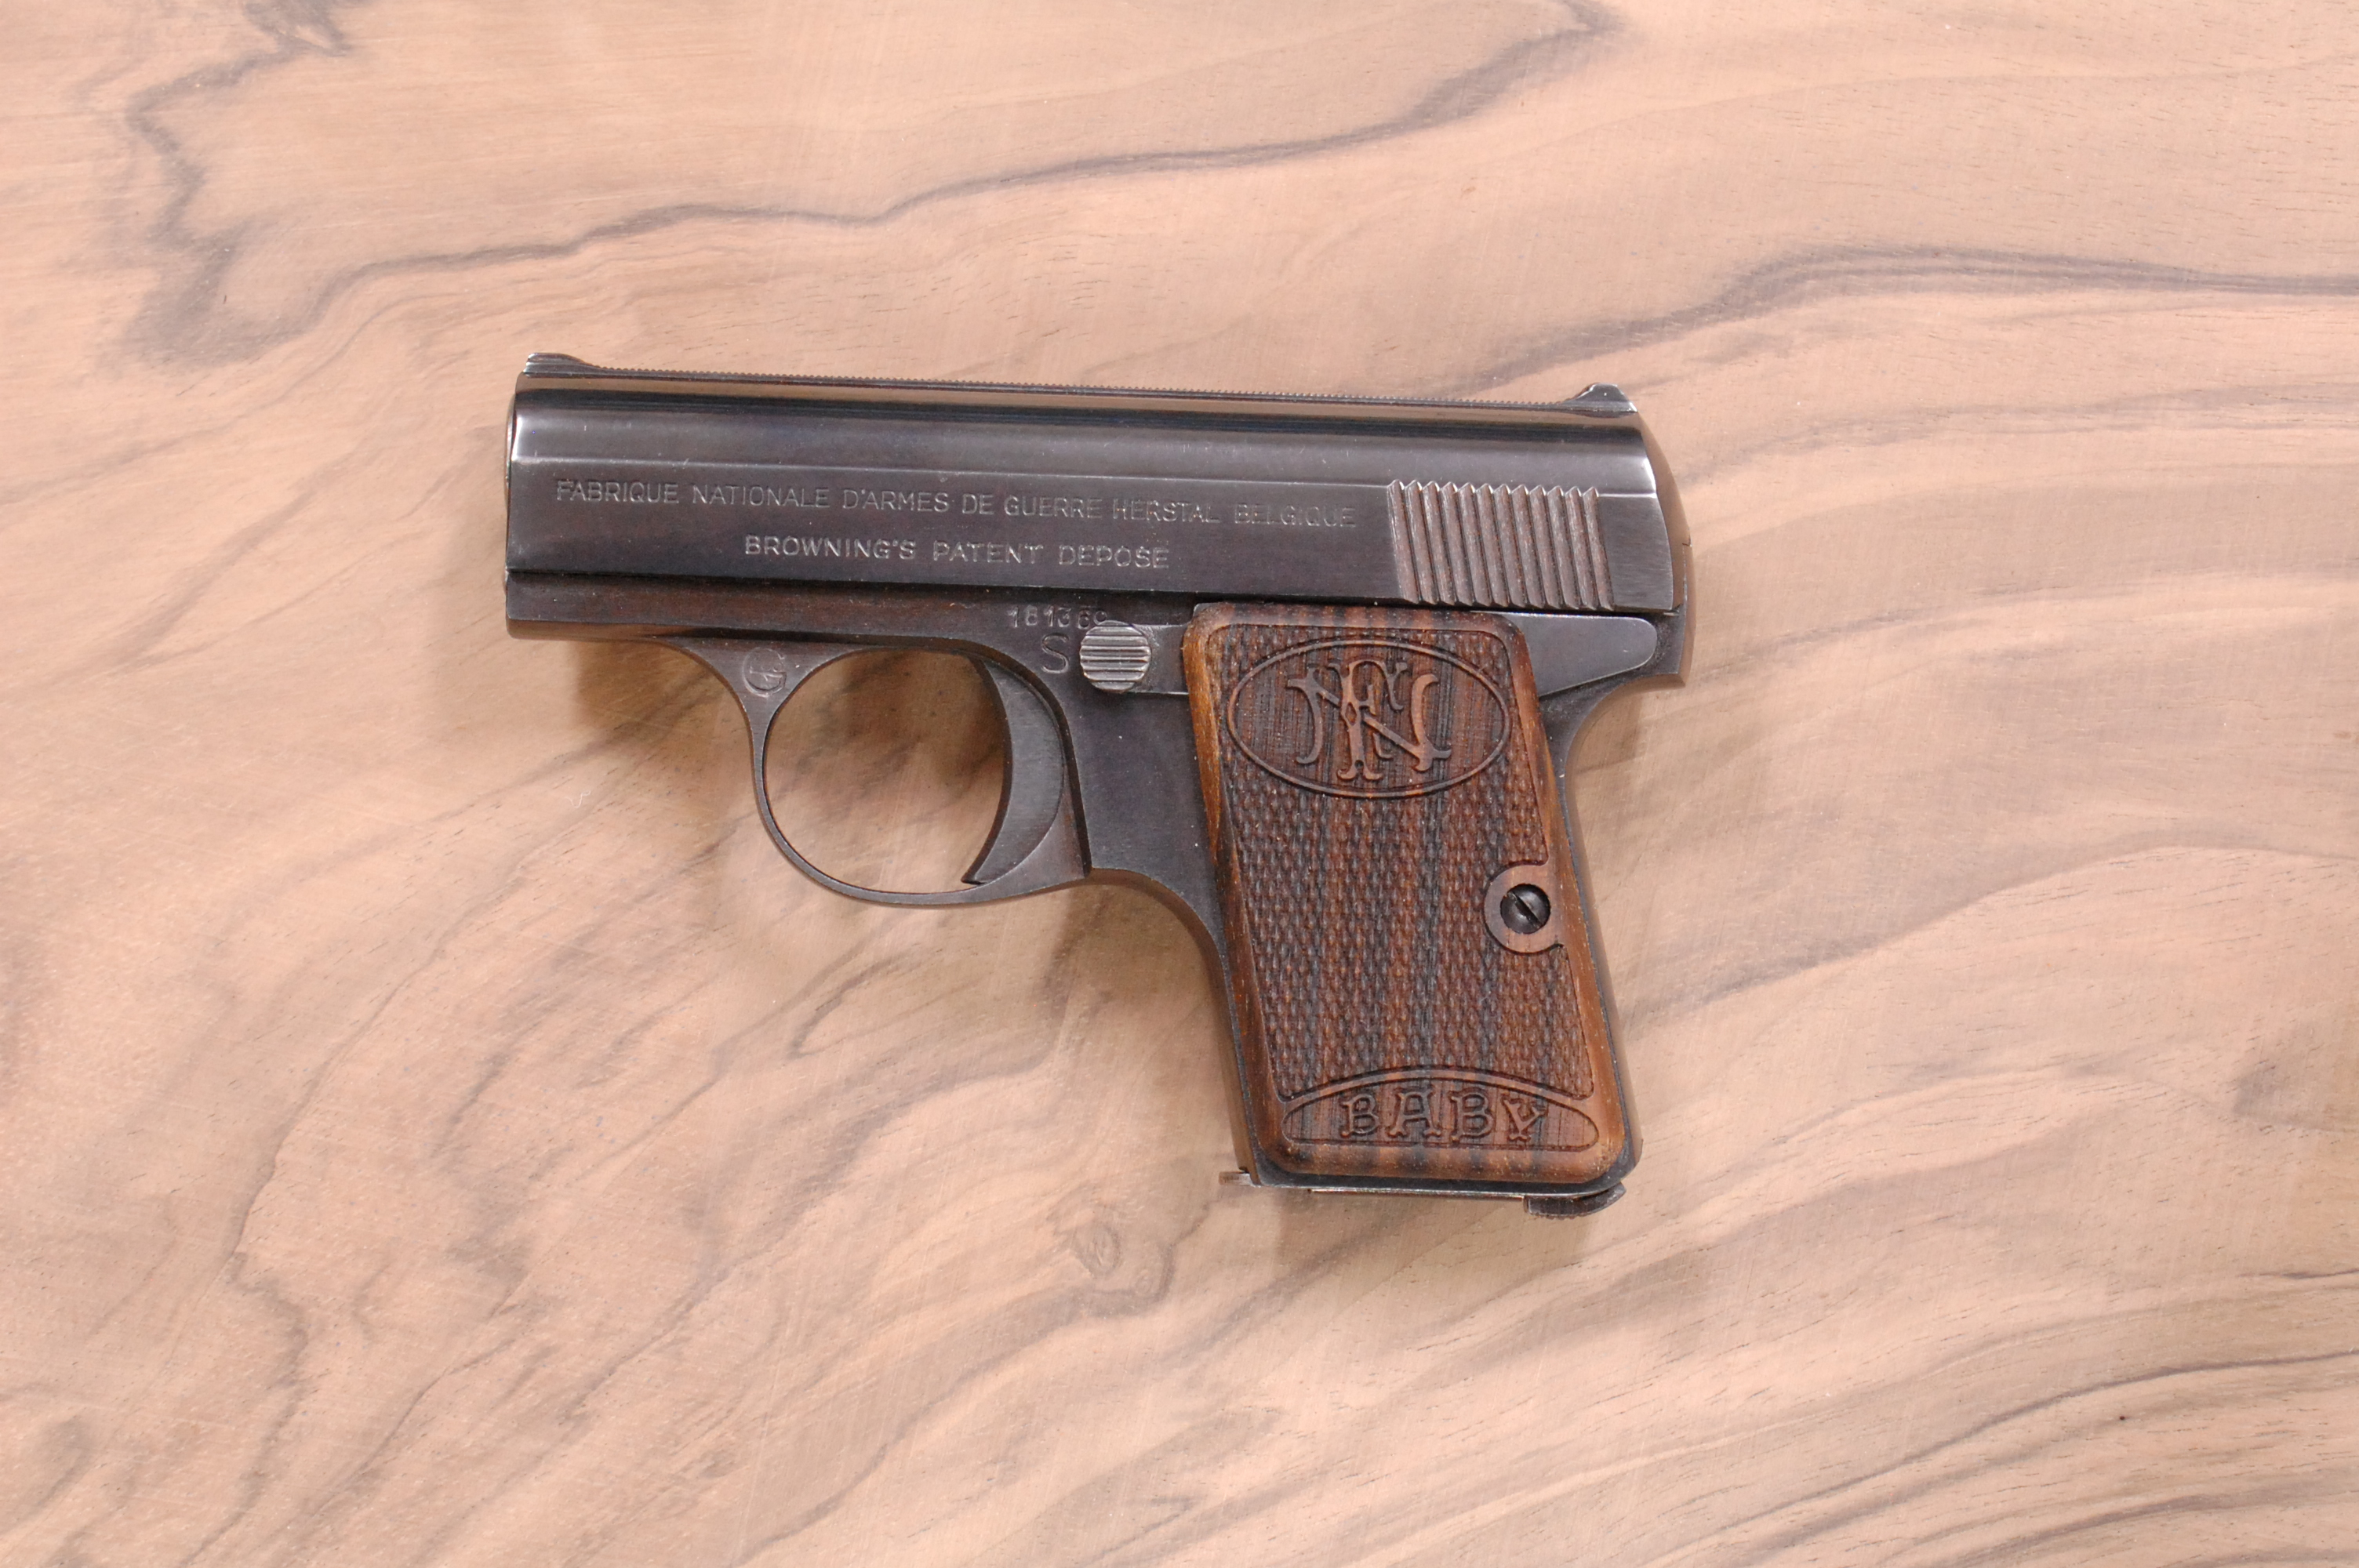 BROWNING BABY GRIPS - full size